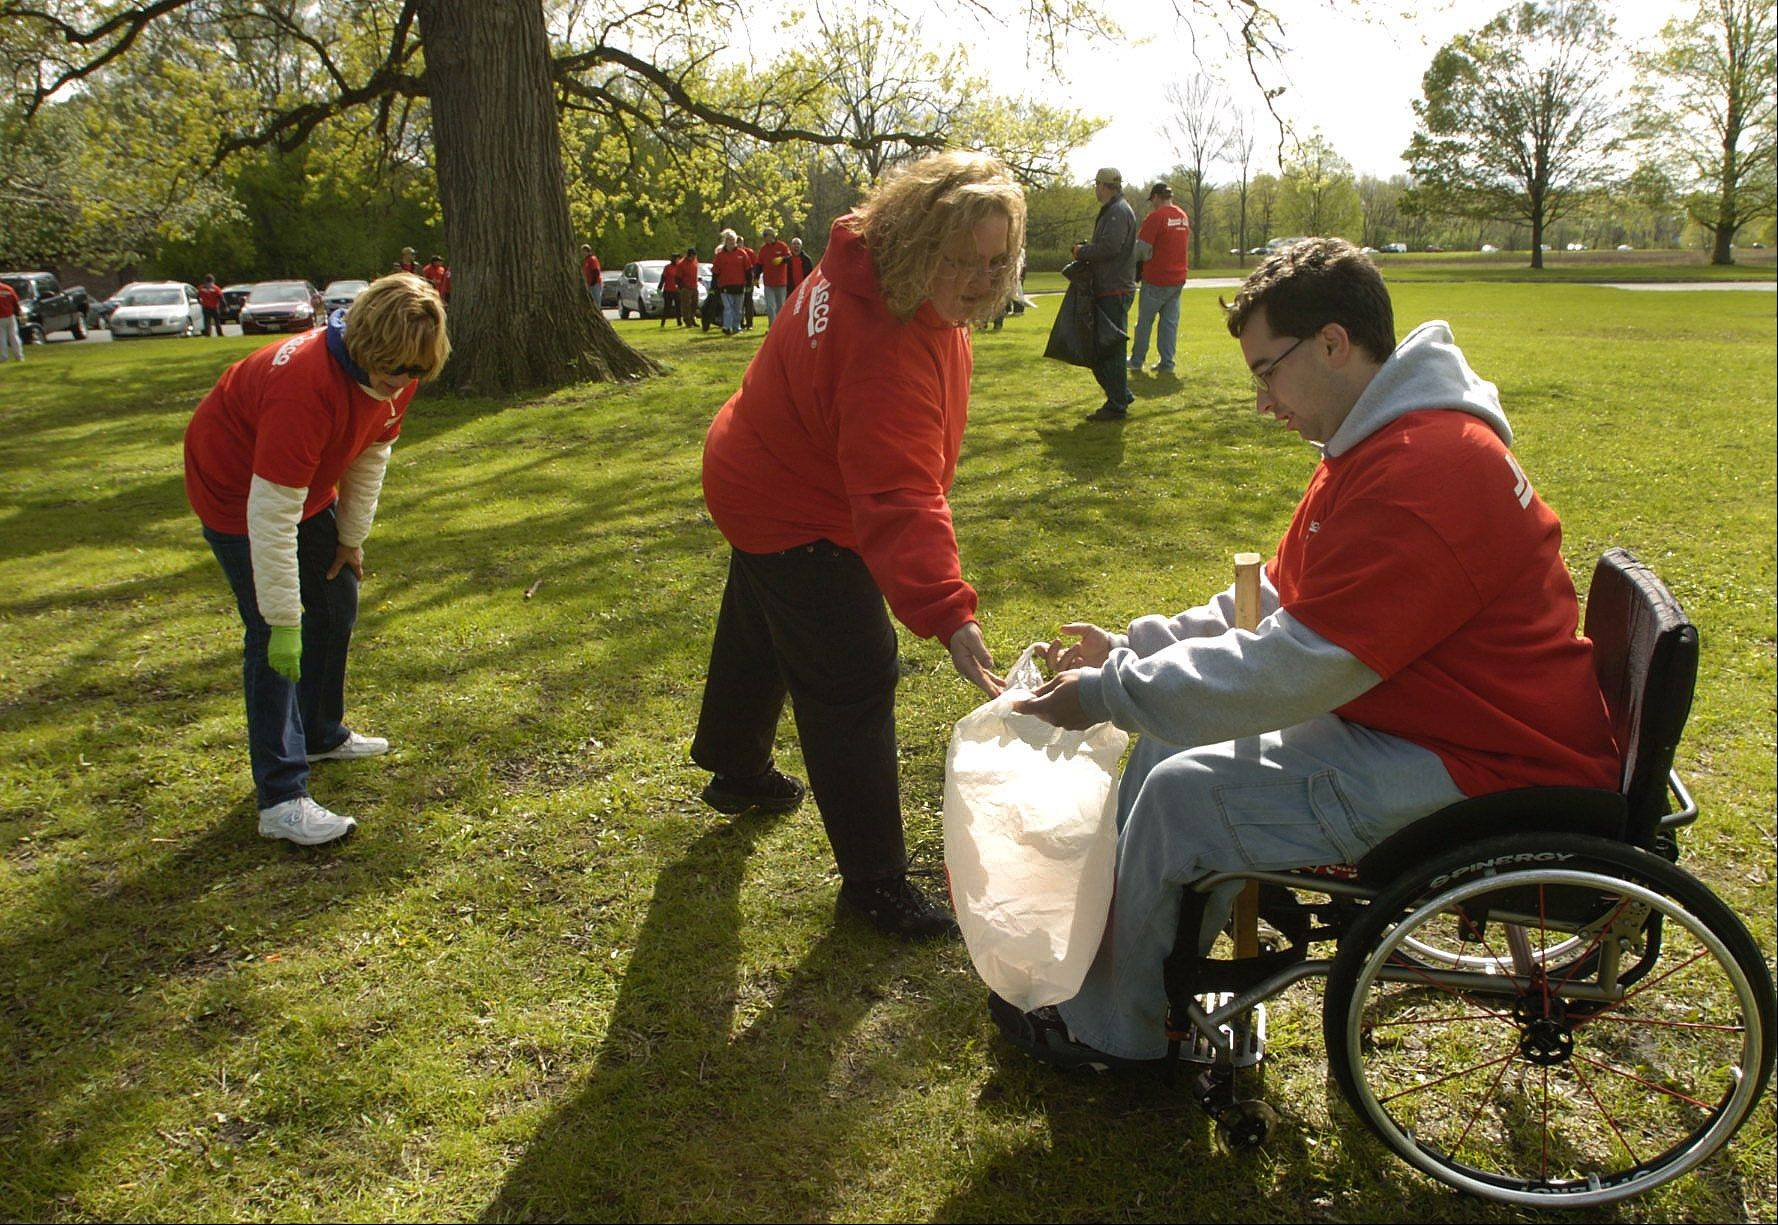 Donna O'Connor of Wheeling, left, and Melissa Foreman of Buffalo Grove deposit refuse in the bag that Seth Goldberg of Arlington Heights holds, as Jewel/Osco employees participate in the 2012 Earth Day cleanup in Busse Woods.